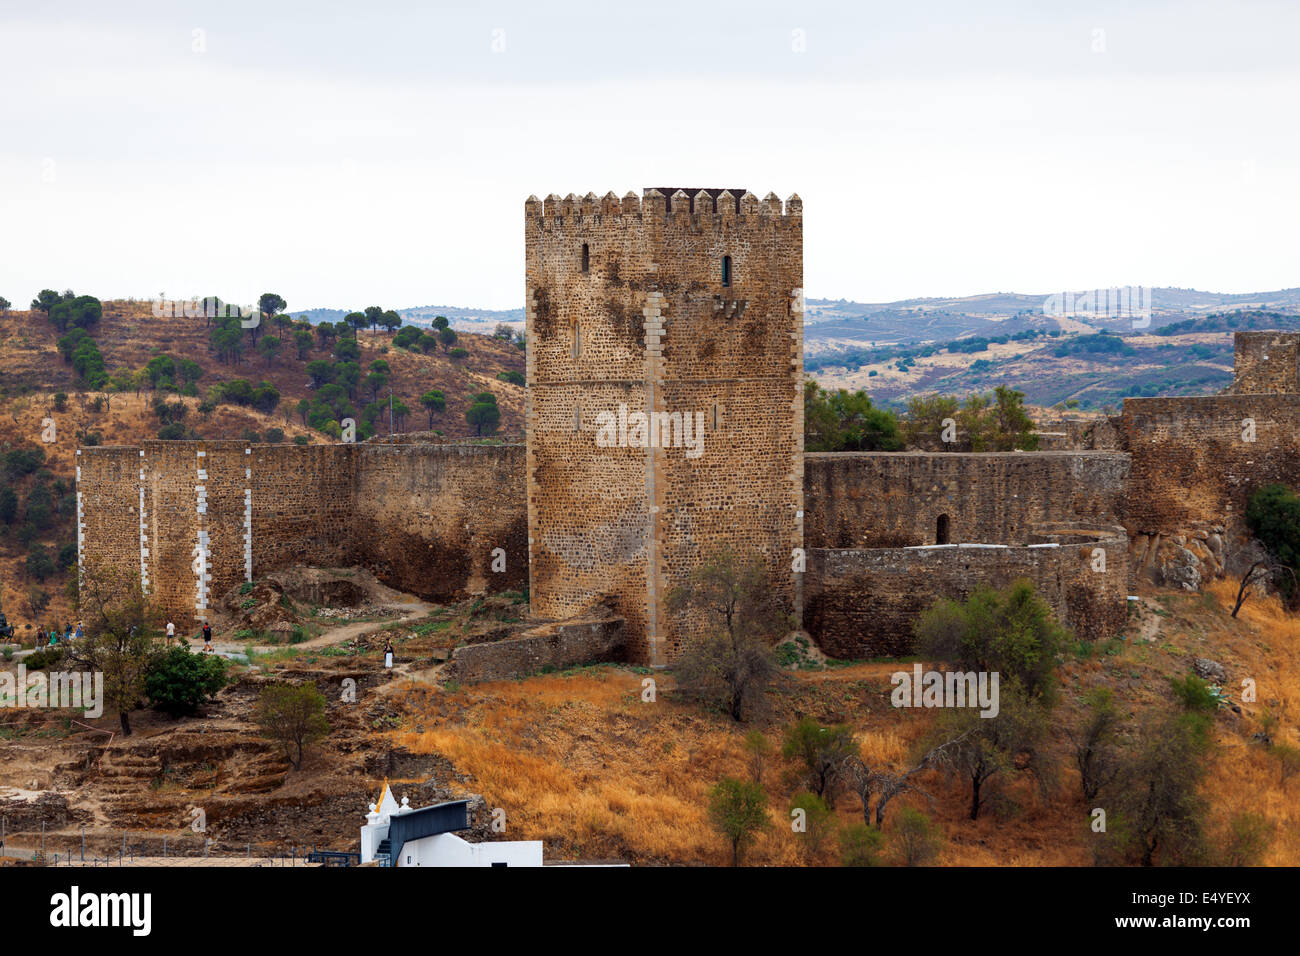 Fortified stone tower - Stock Image